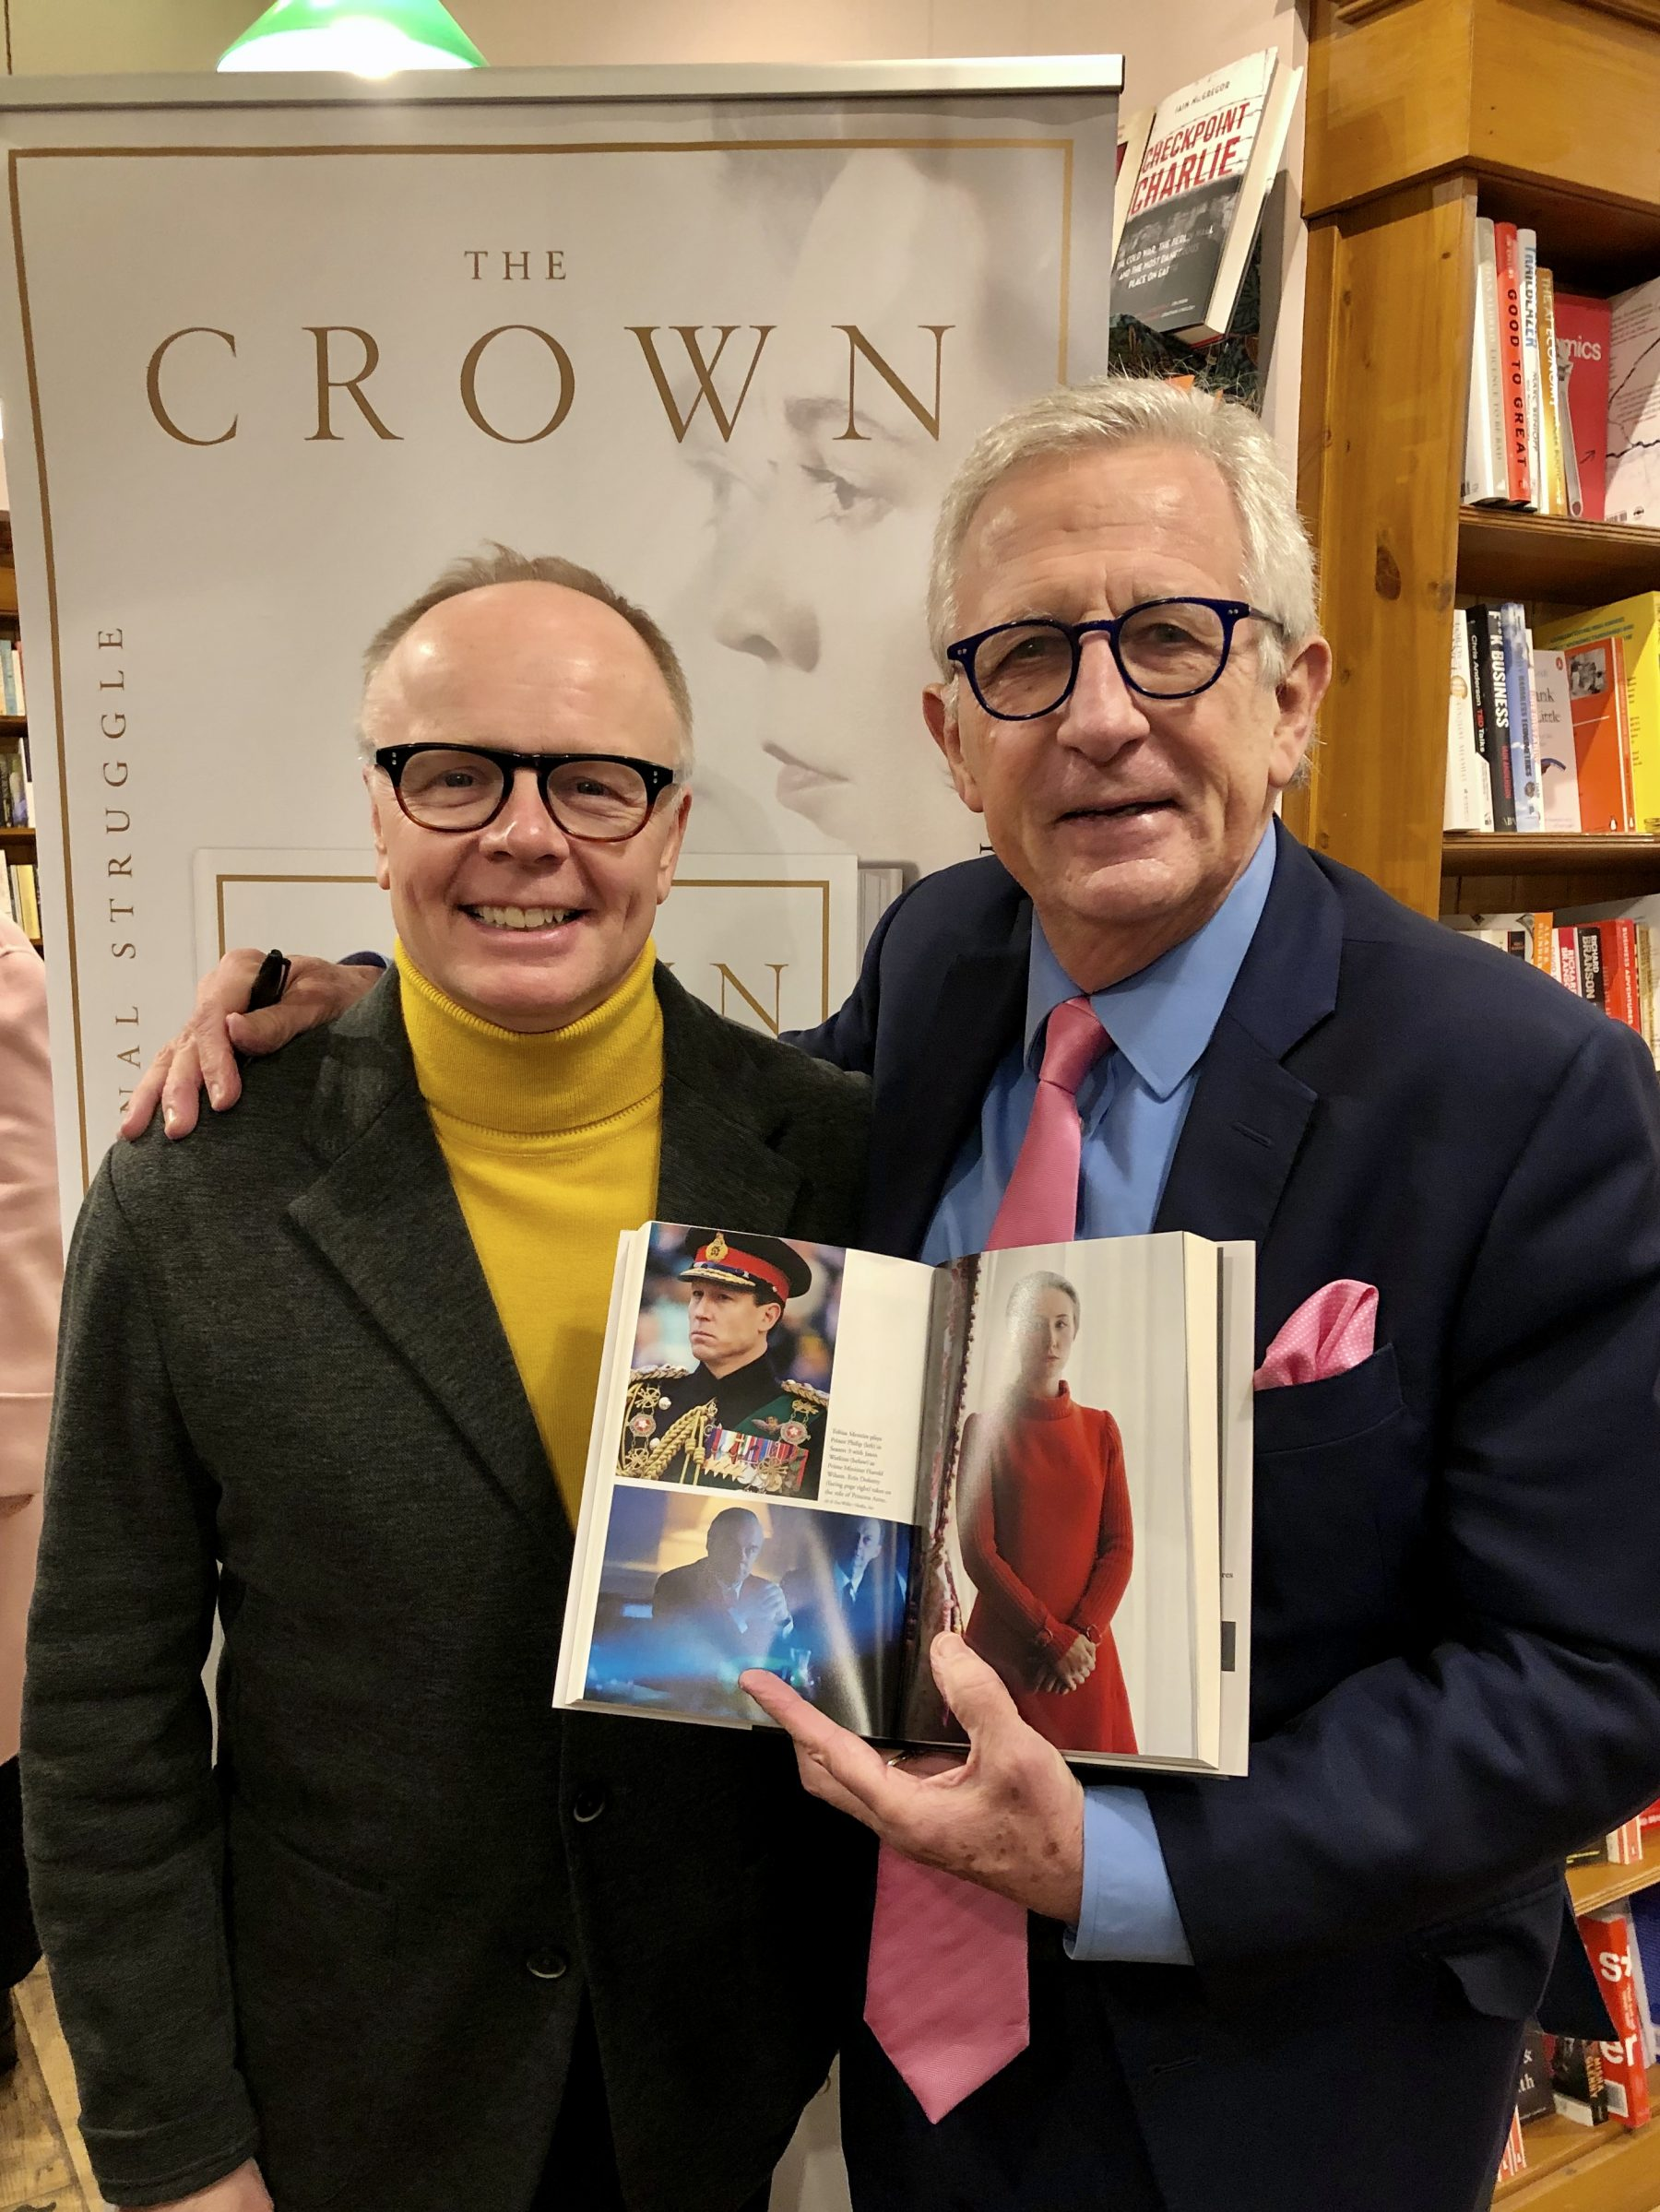 The crown volume 2 launch